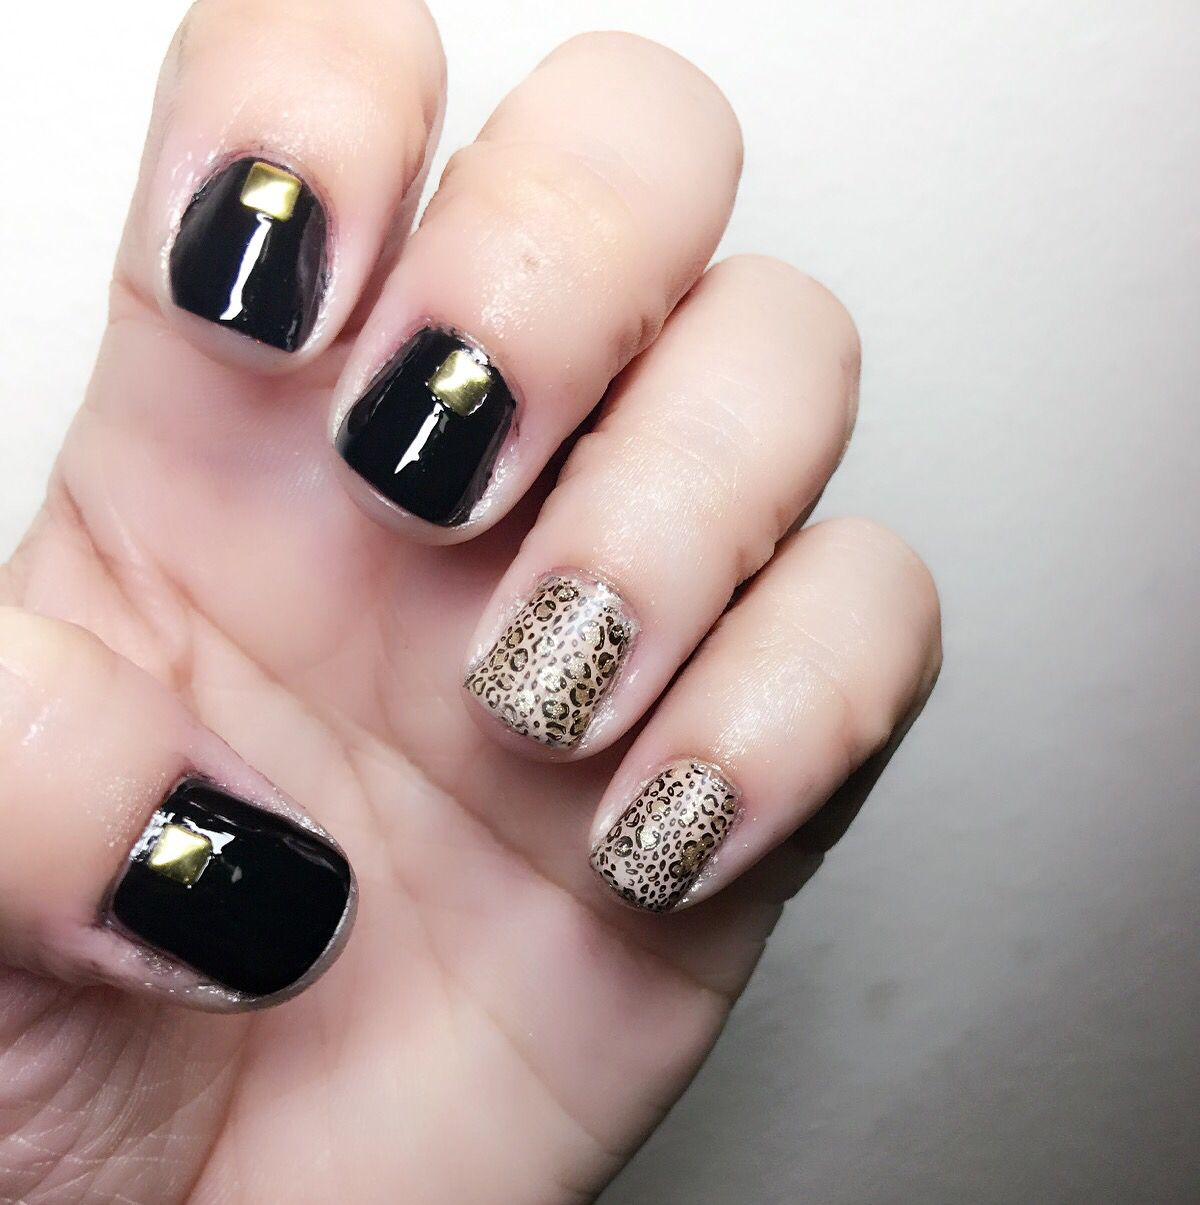 Leopard and black nails | Beauty And Nails | Pinterest | Black nails